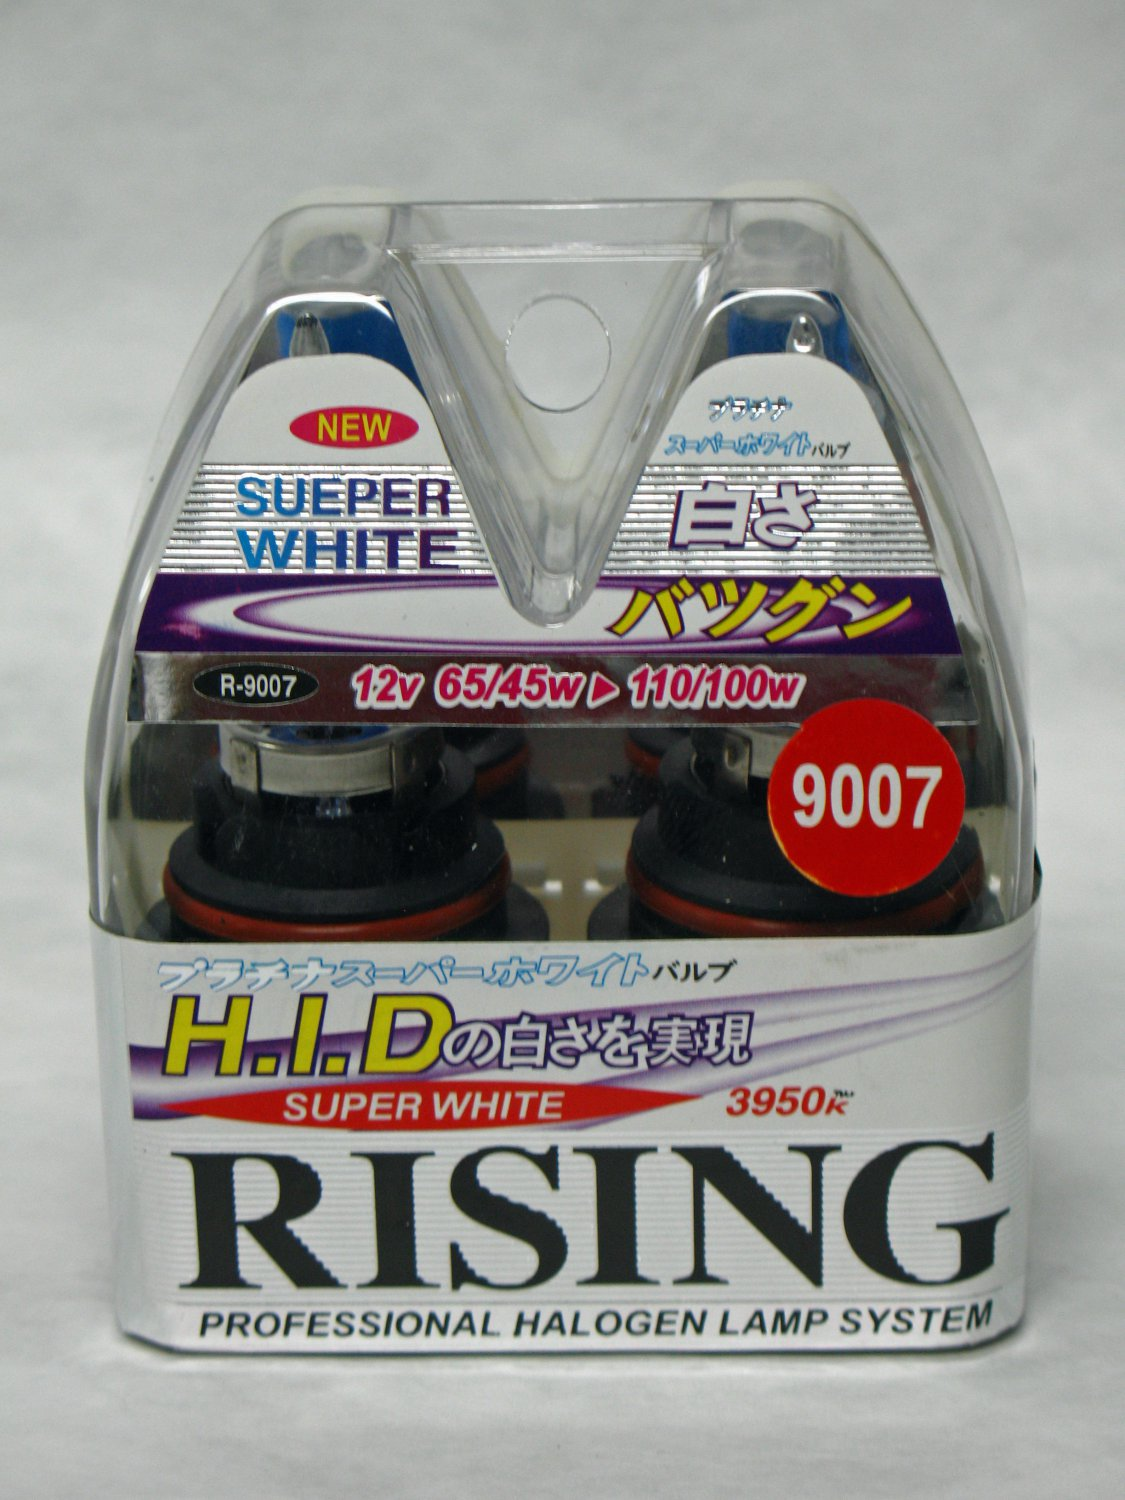 9007 Rising Super White 3950K 65/45W Halogen Replacement Headlight Bulb Set of 2 from Japan